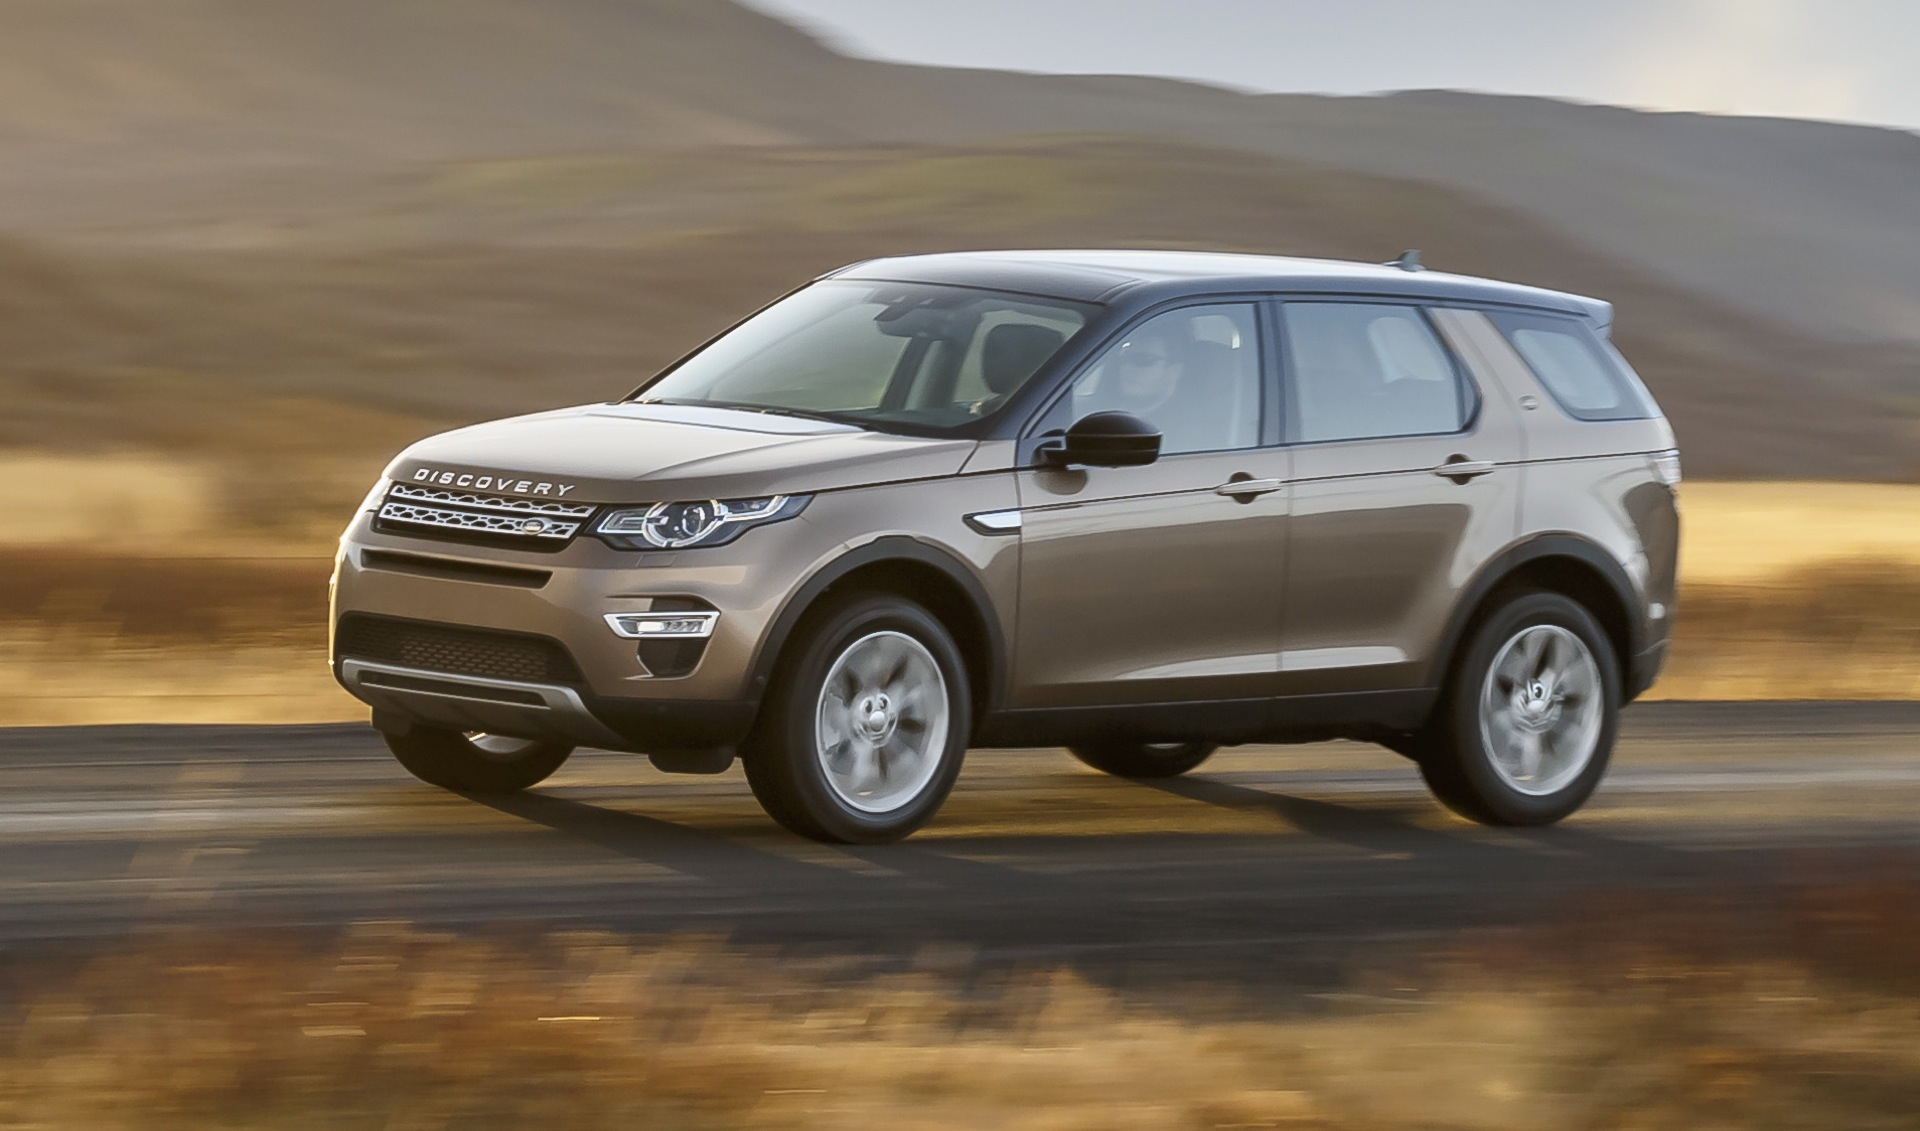 2016 land rover discovery sport quality review the car connection. Black Bedroom Furniture Sets. Home Design Ideas